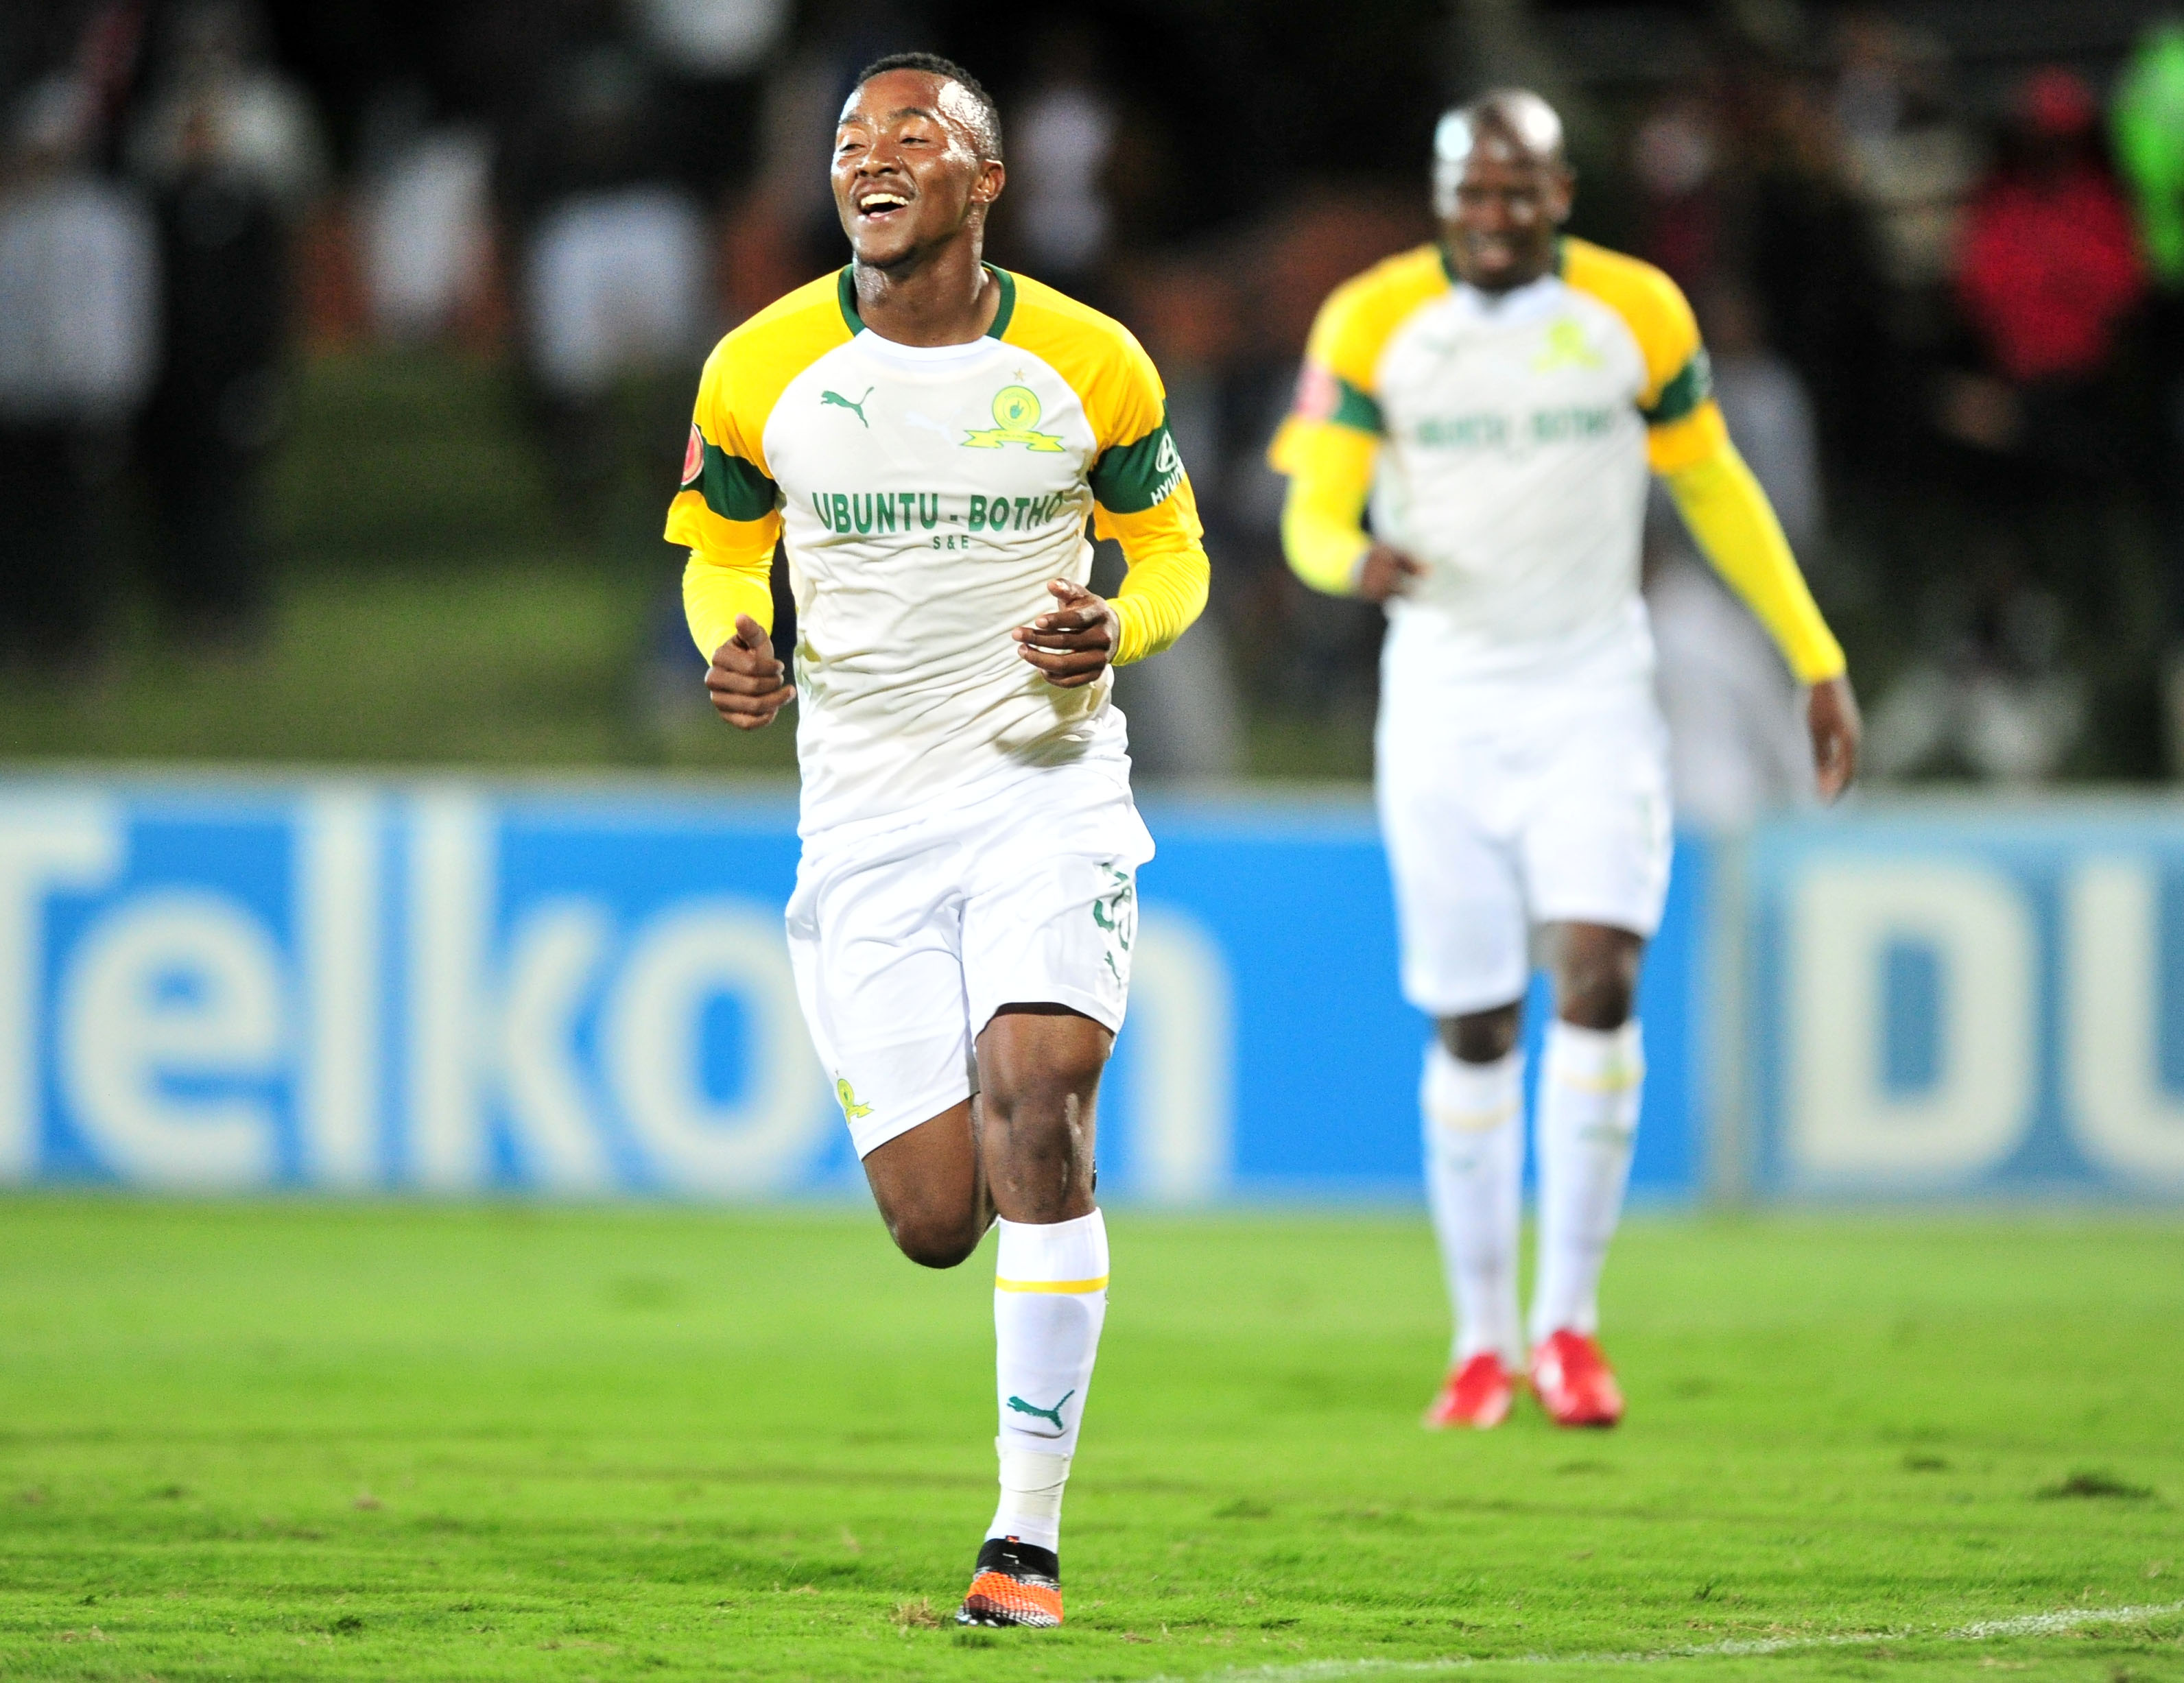 Lebohang Maboe celebrates his goal against Golden Arrows